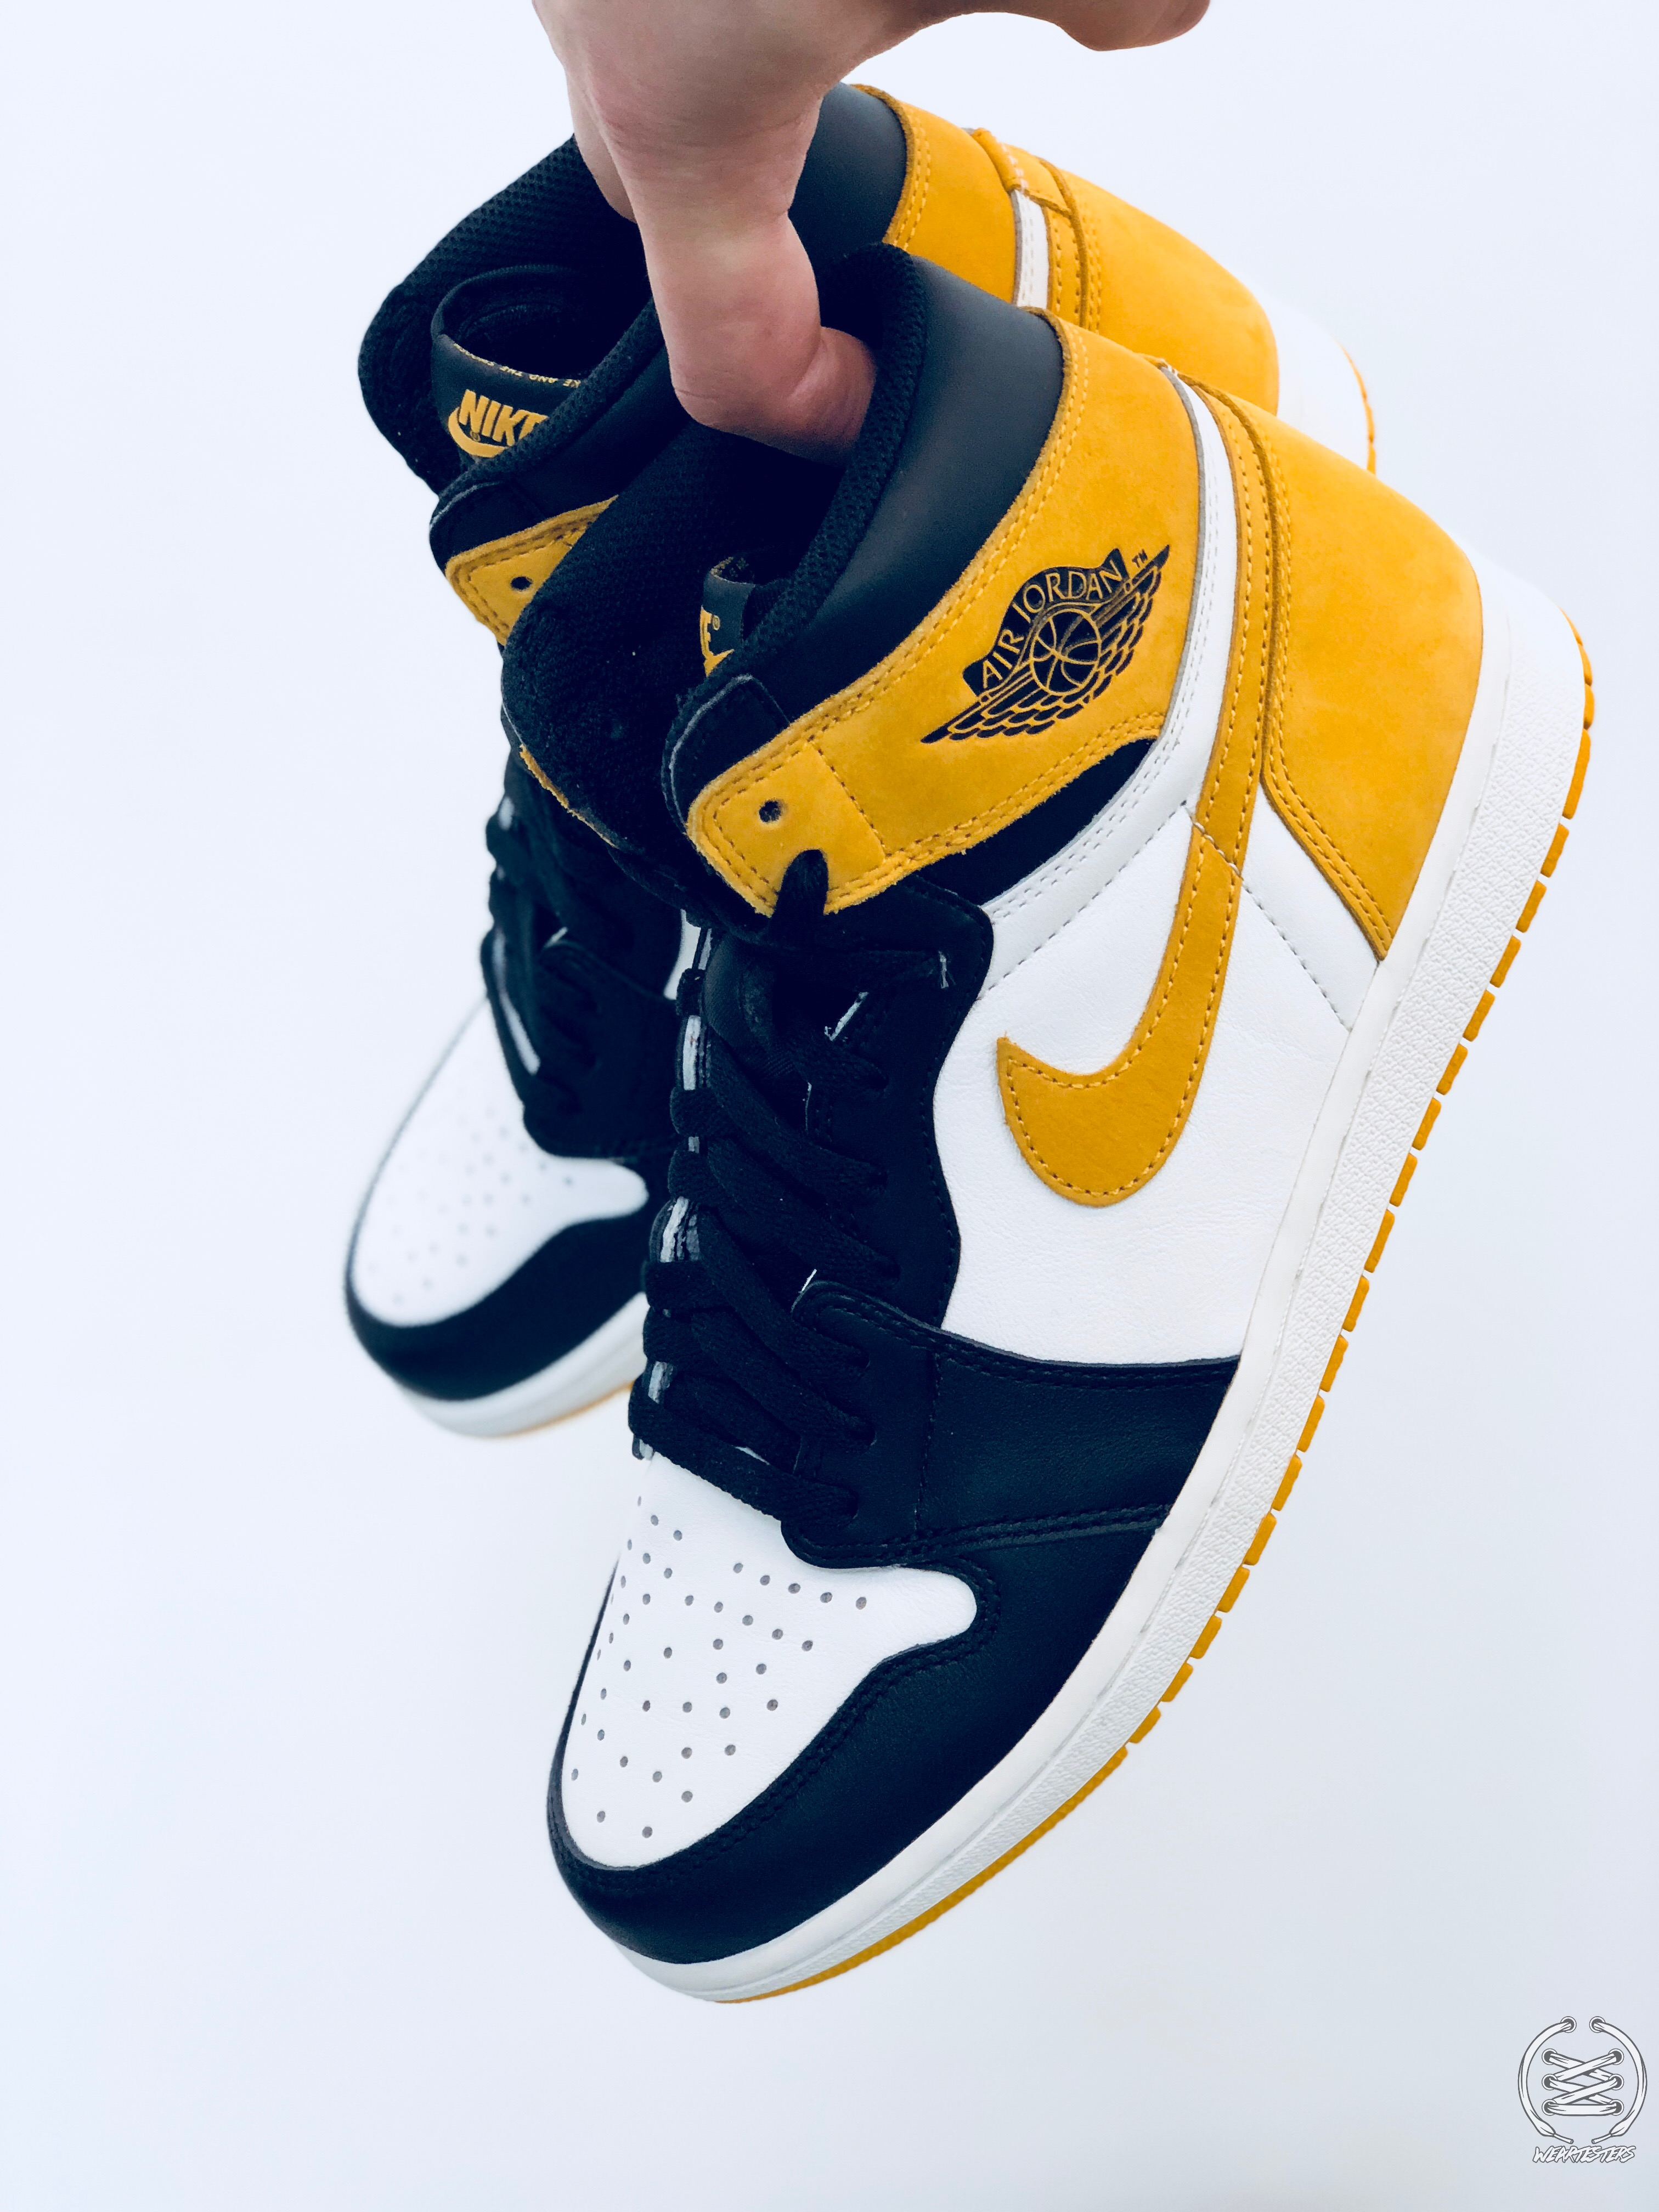 674001f43bd4 Air Jordan 1 Yellow Ochre Best Hand in the Game collection - WearTesters